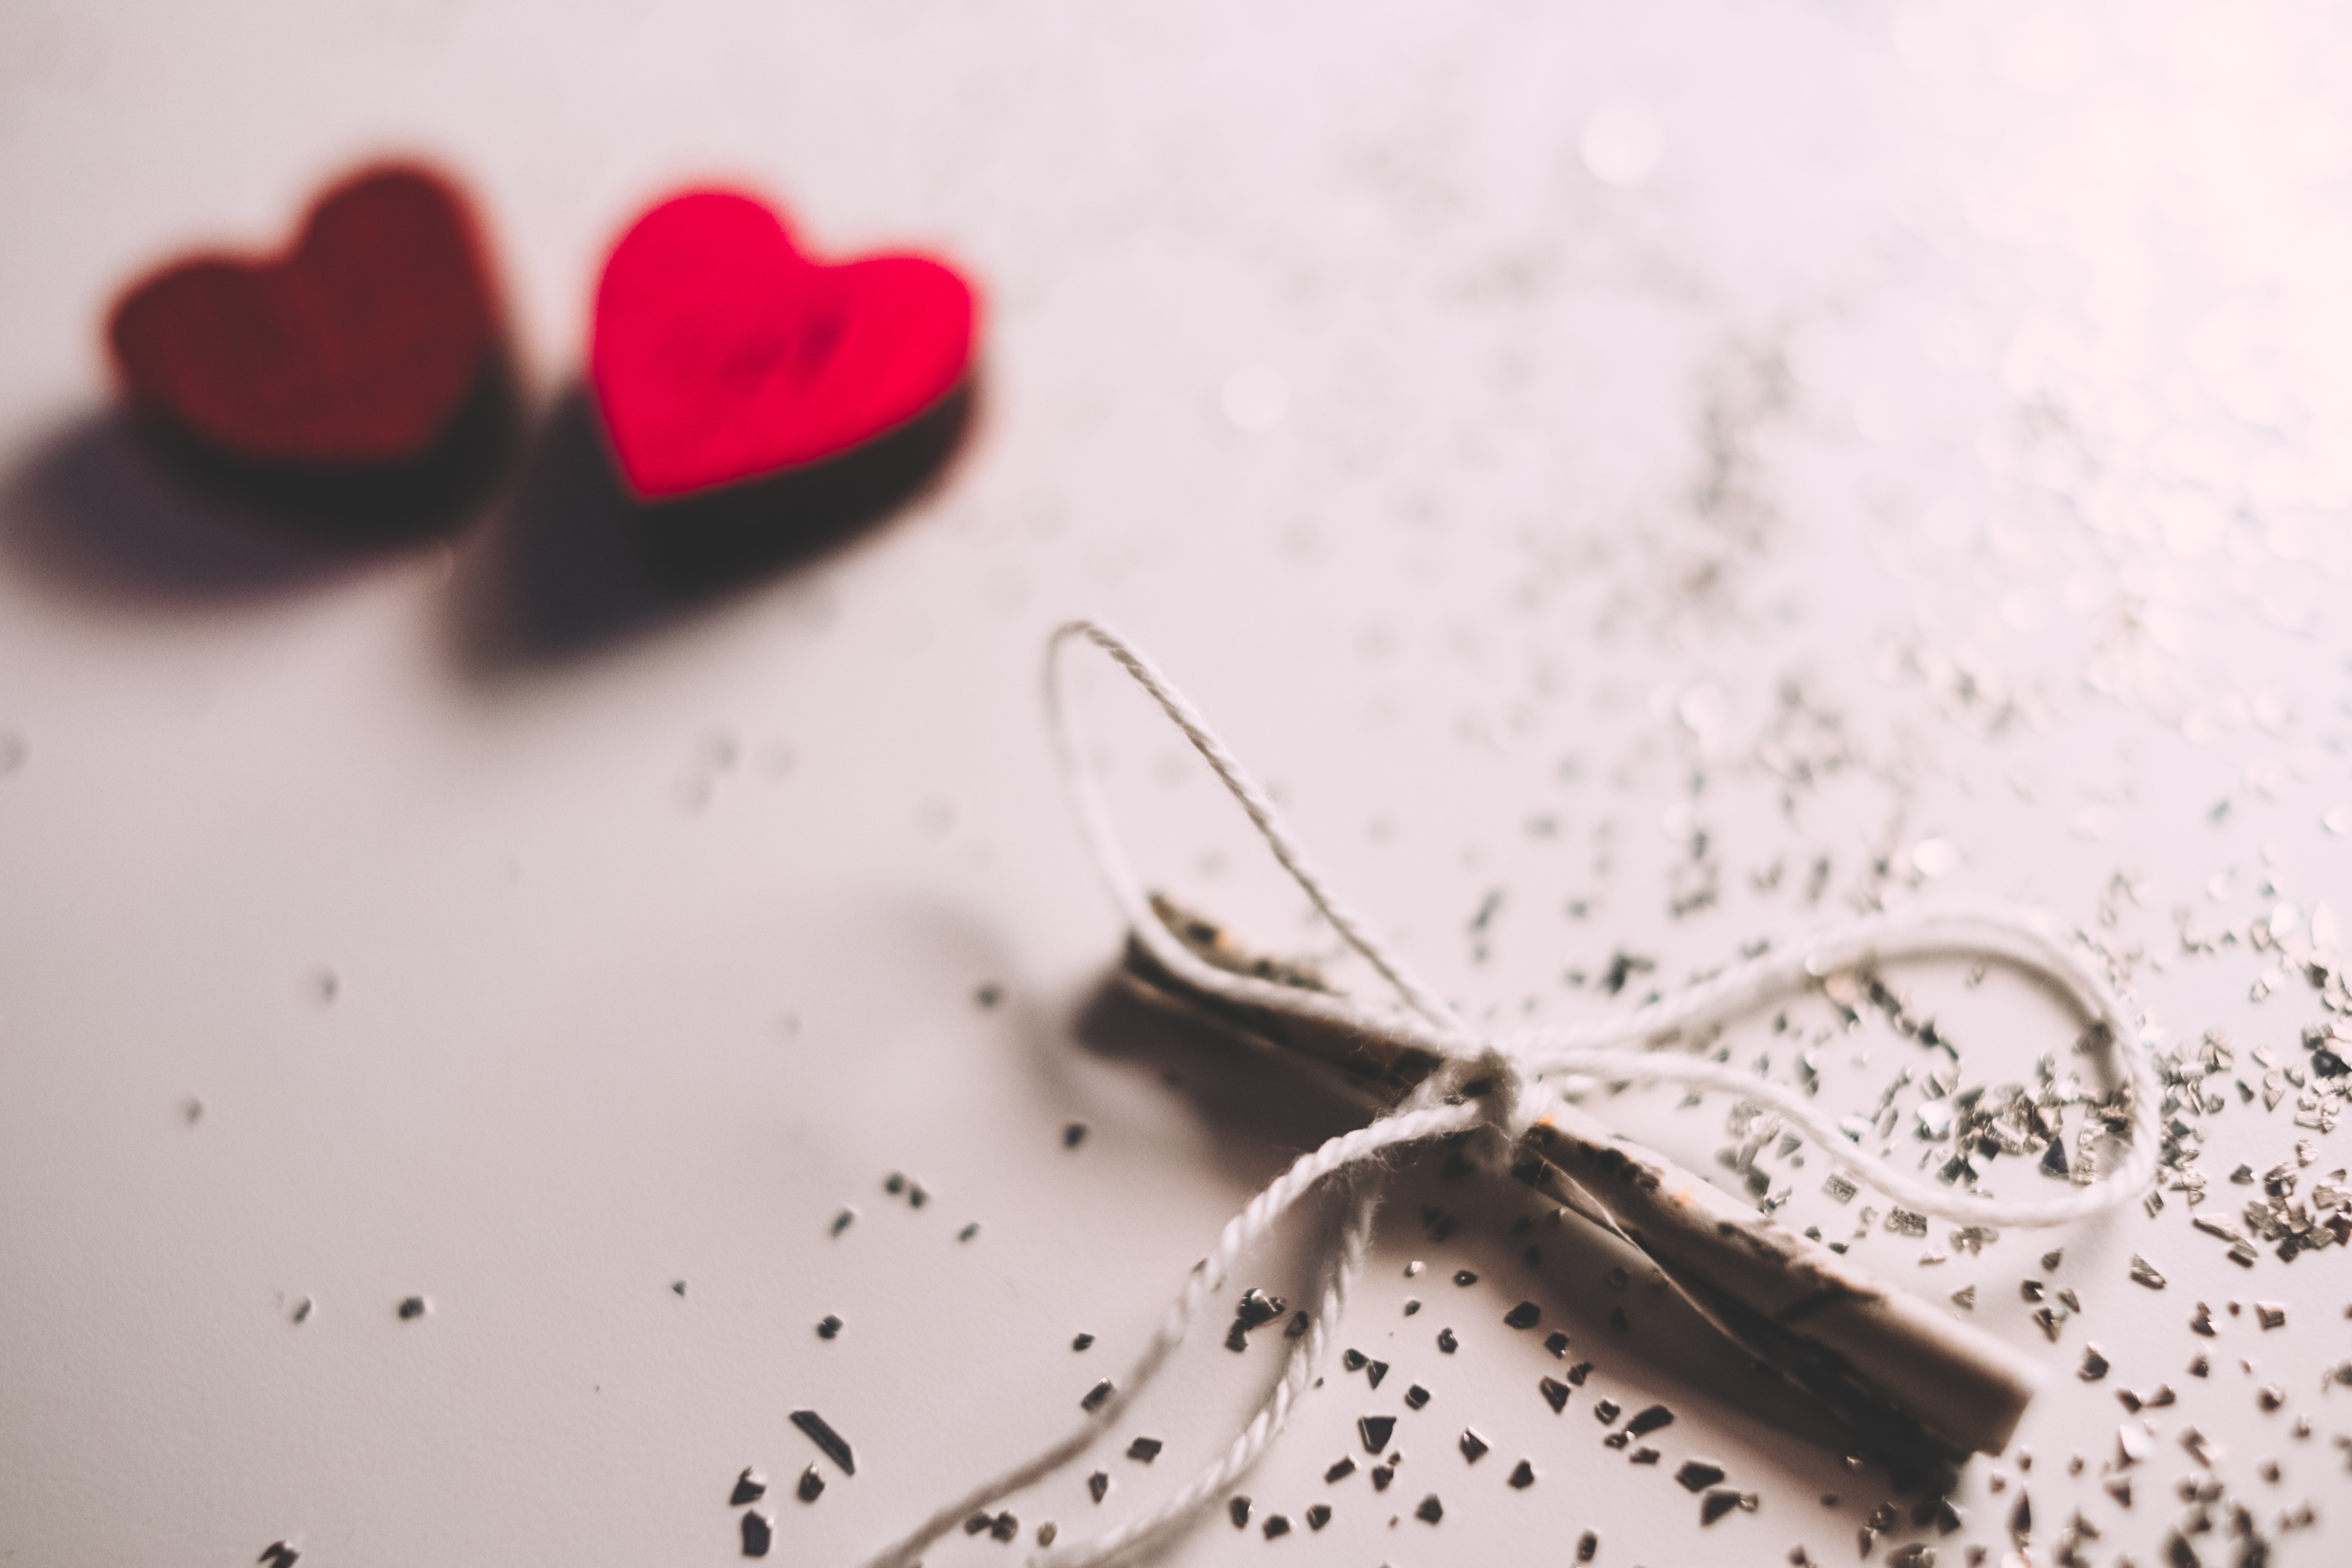 Two Red Hearts, Blur, Close-up, Design, Hearts, HQ Photo